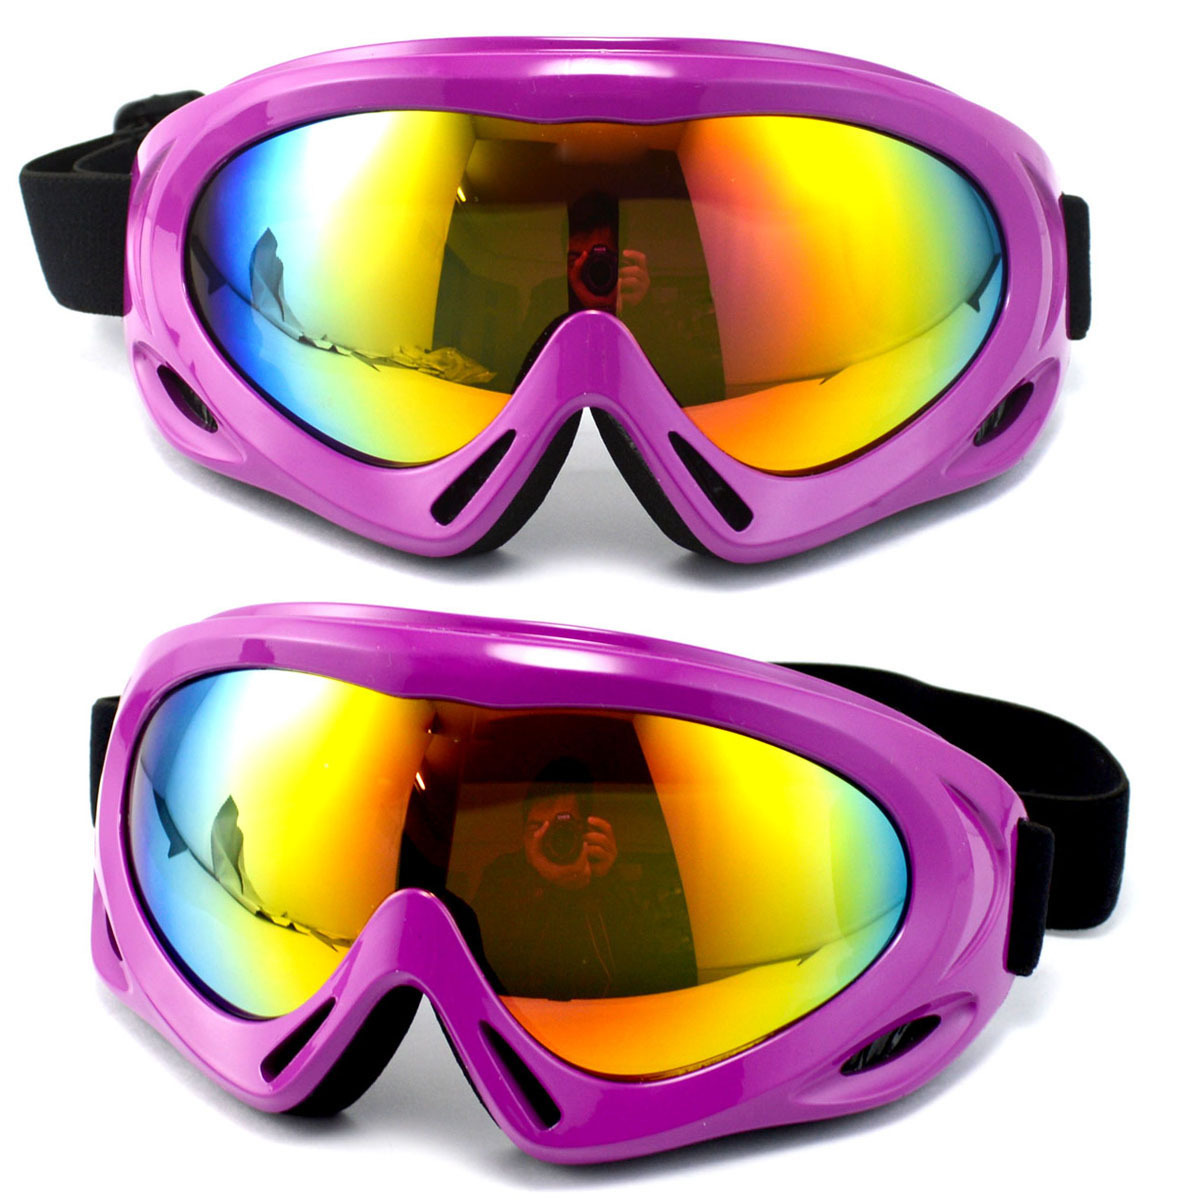 Guangzhou Small Spider-Ski Goggles Single Layer Snowfield Windproof Sand Eye-protection Goggles Customizable Processing